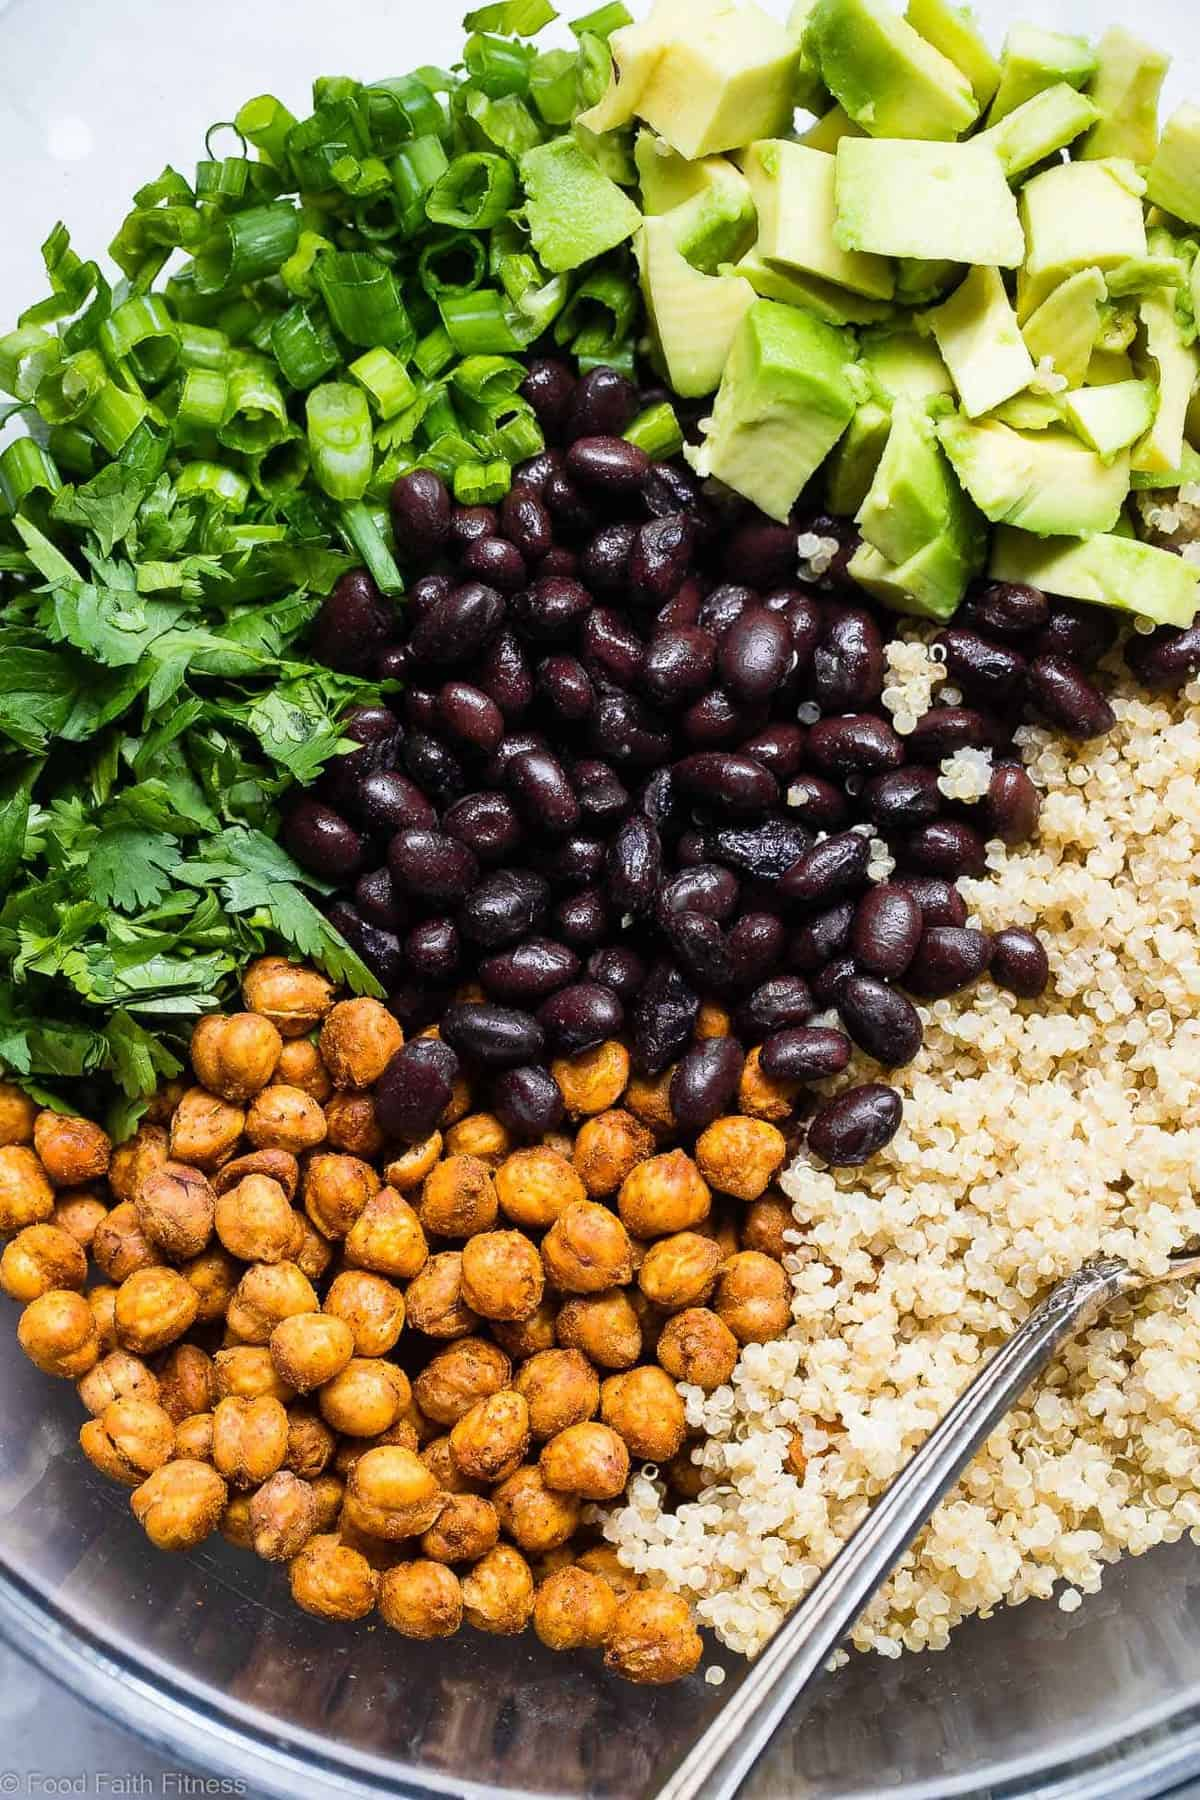 Mexican Quinoa Salad with Roasted Chickpeas -This EASY quinoa saladis going to be your new favorite side or potluck recipe! It's healthy, gluten free, vegan friendly and CRAZY YUMMY! The Jalapeno lime dressing is EVERYTHING. | #Foodfaithfitness | #Vegan #Healthy #GlutenFree #Dairyfree #Quinoa